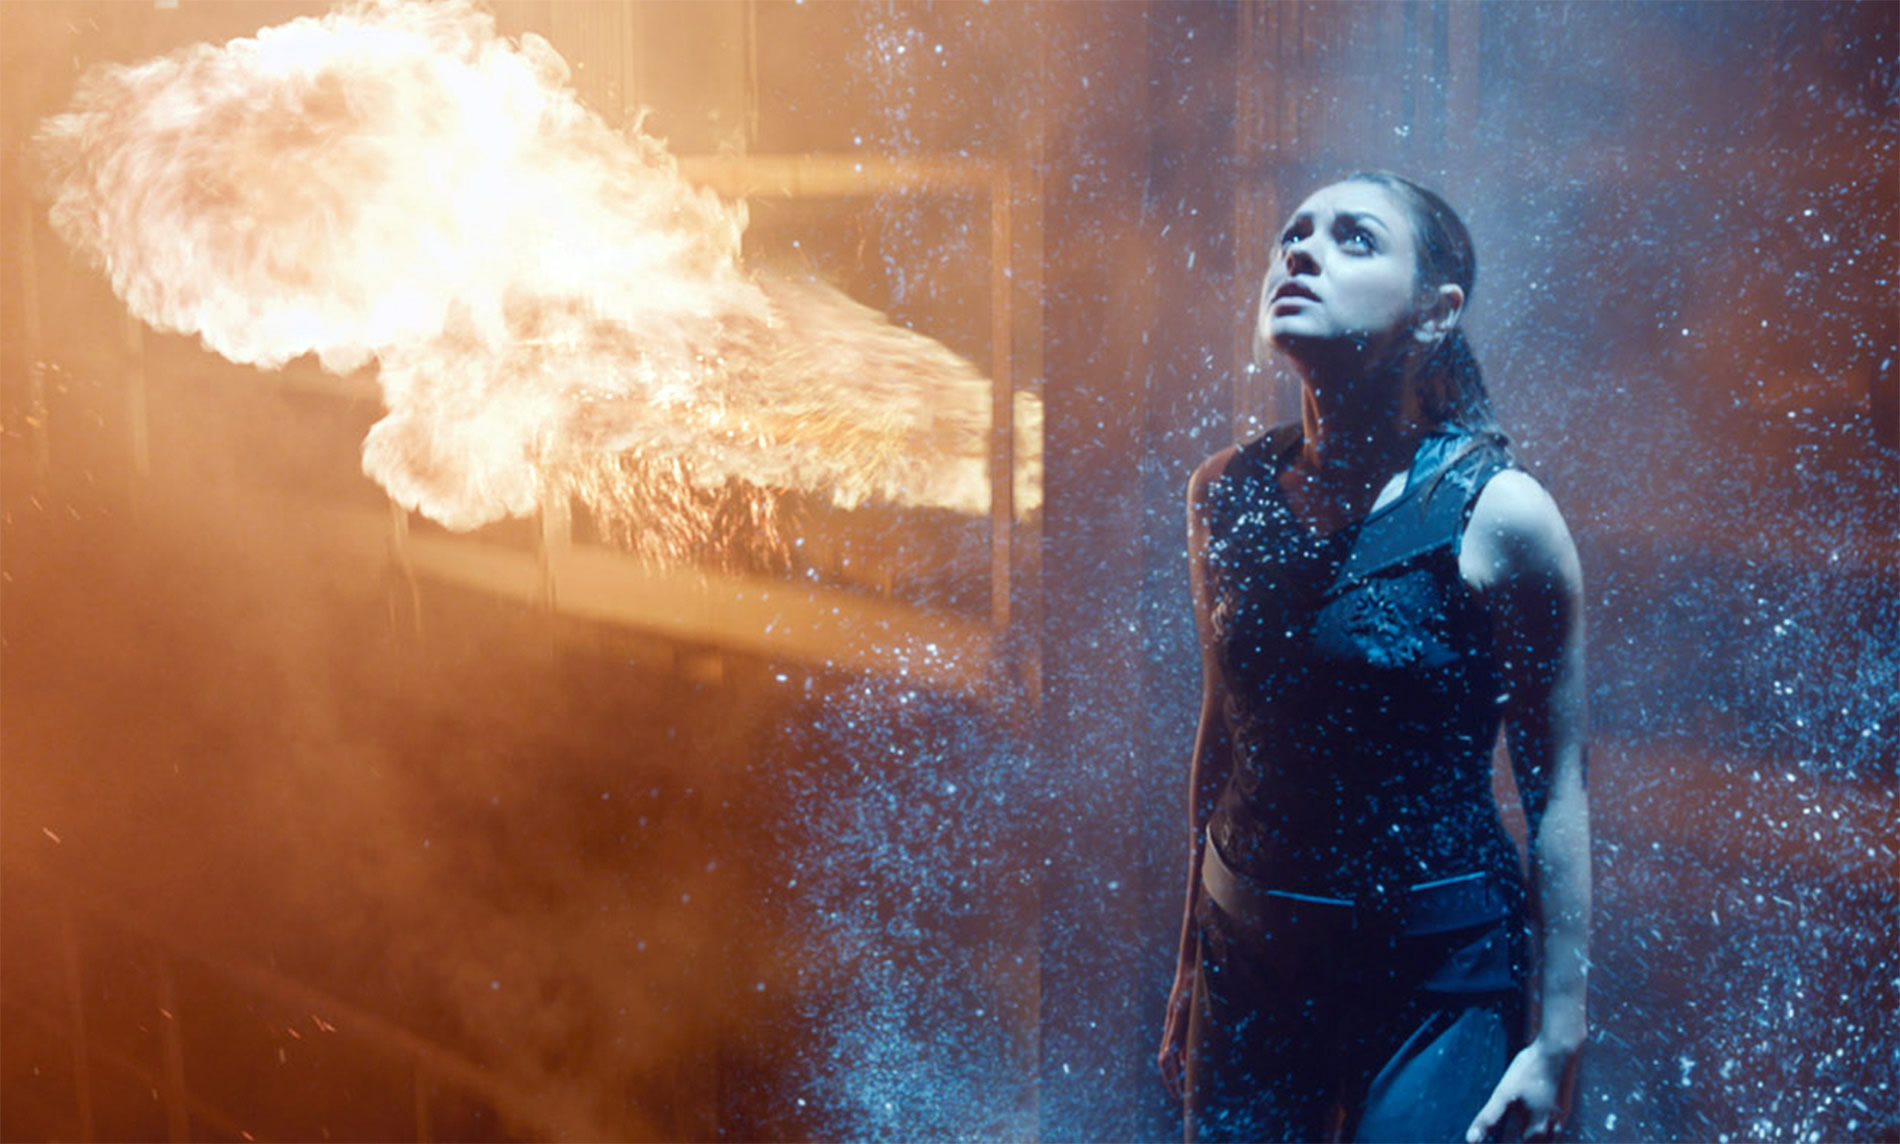 mila kunis in jupiter ascending movie